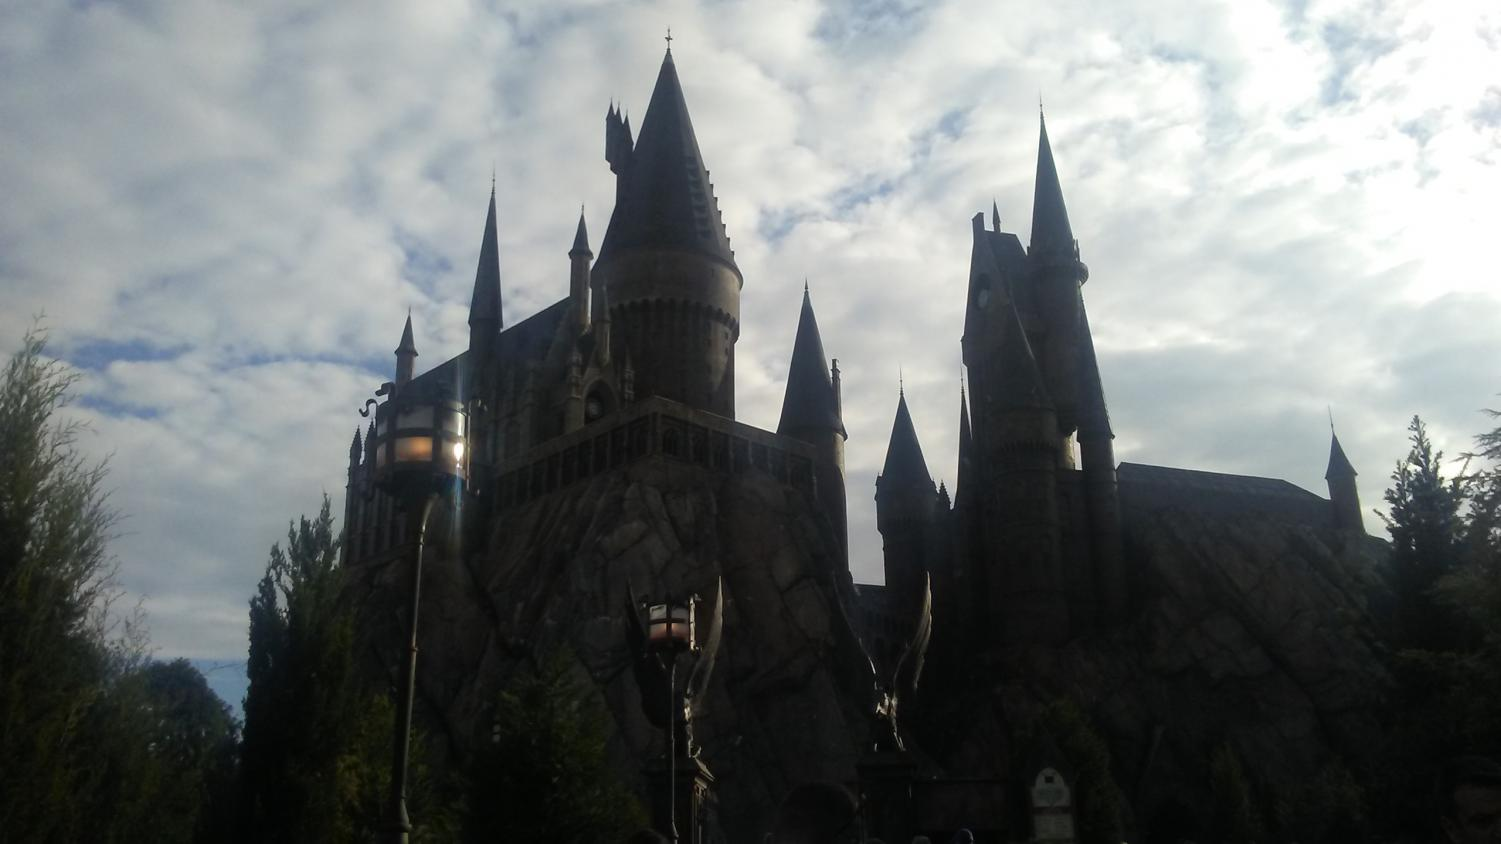 Entrance to Soar above Hogwarts with Harry Potter